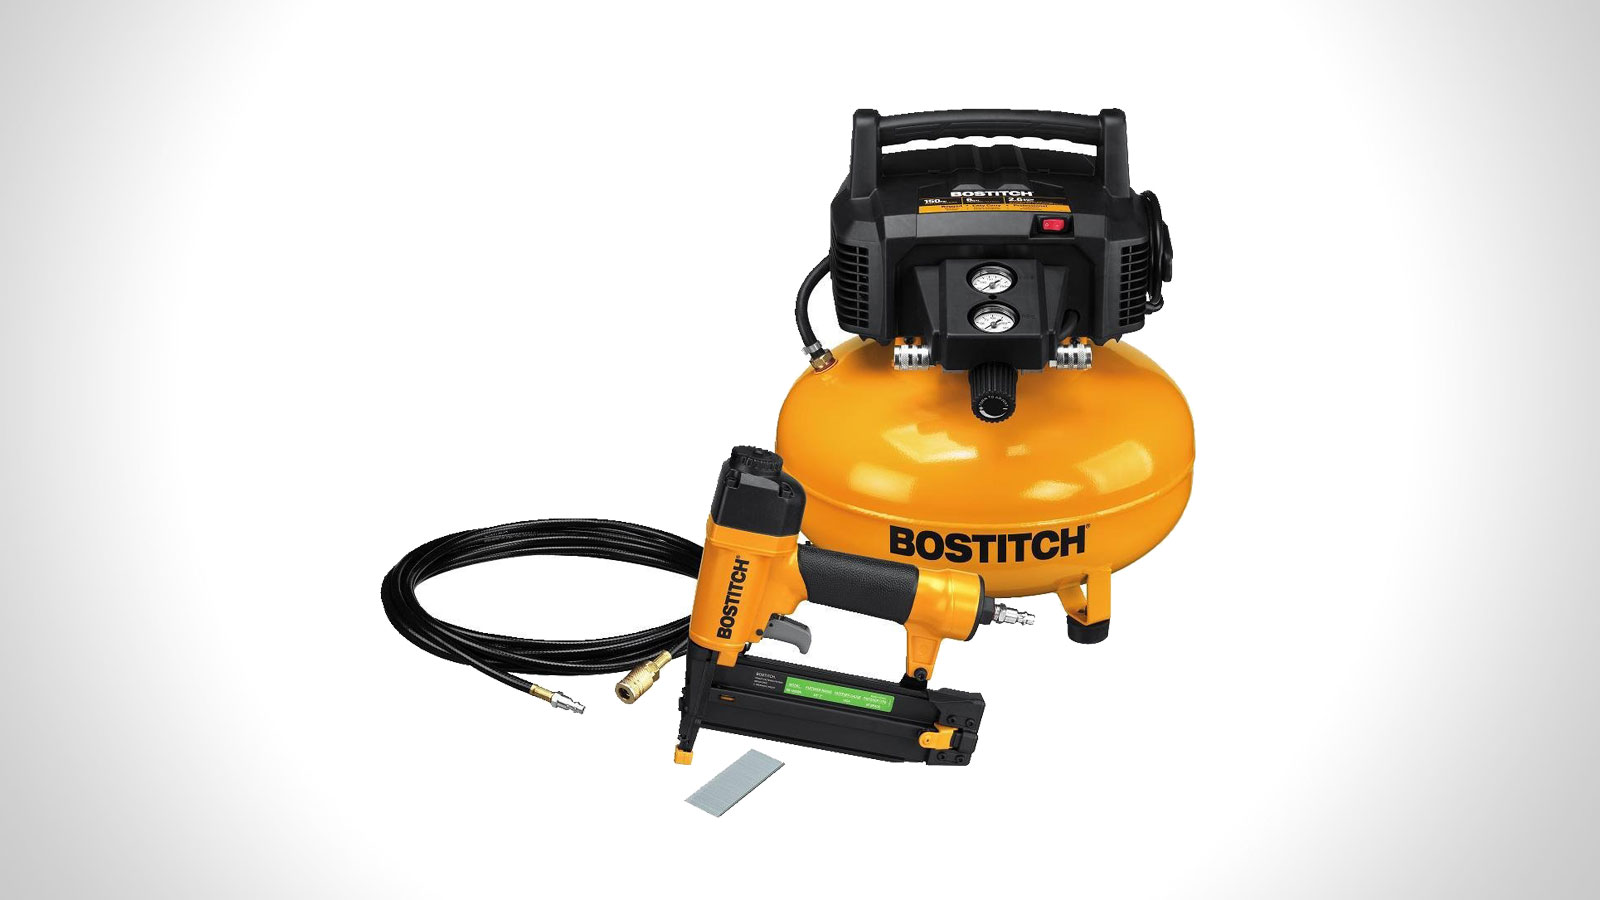 Bostitch Brad Nail & Compressor Combo Kit | gifts for men | the best tool gift ideas